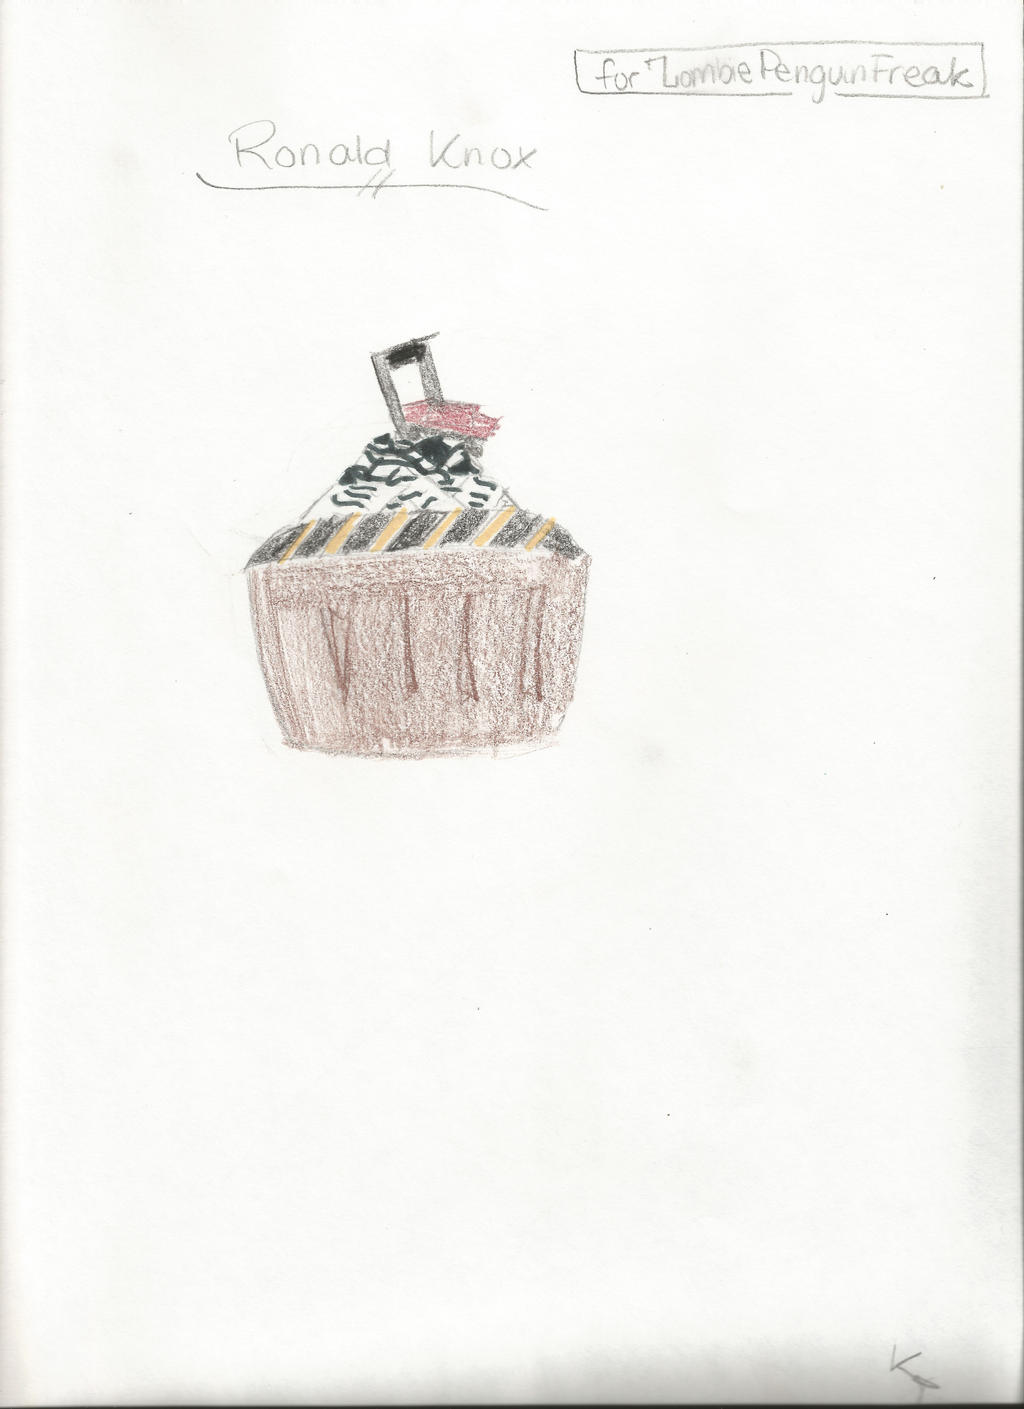 Ronald Knox Cupcake by kayleyster